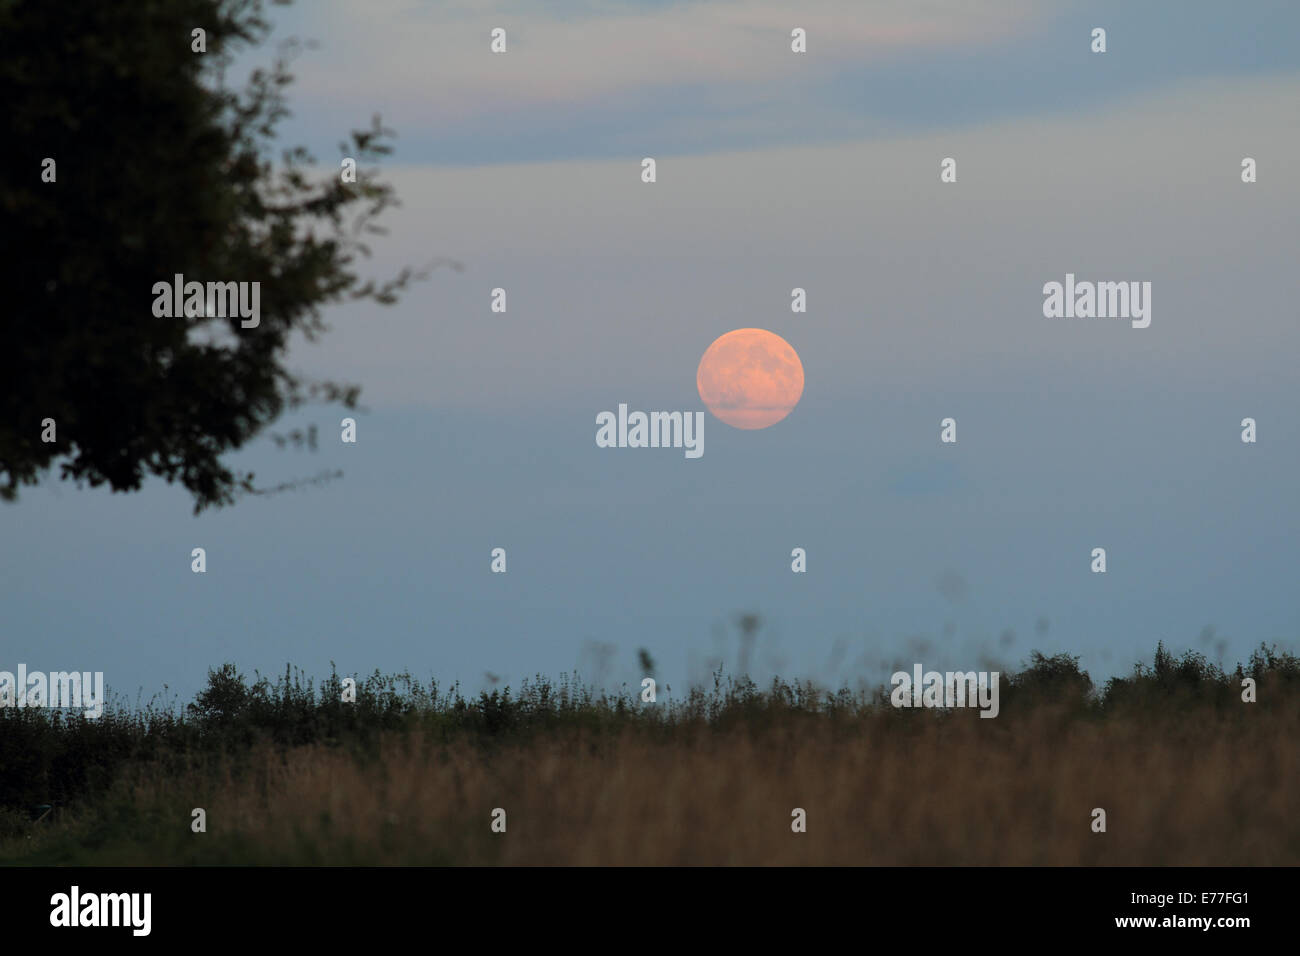 Norfolk, UK. 8th Sep. 2014. Full moon at Burgh Castle, Great Yarmouth, Norfolk, UK Credit:  charcrit boonsom/Alamy - Stock Image